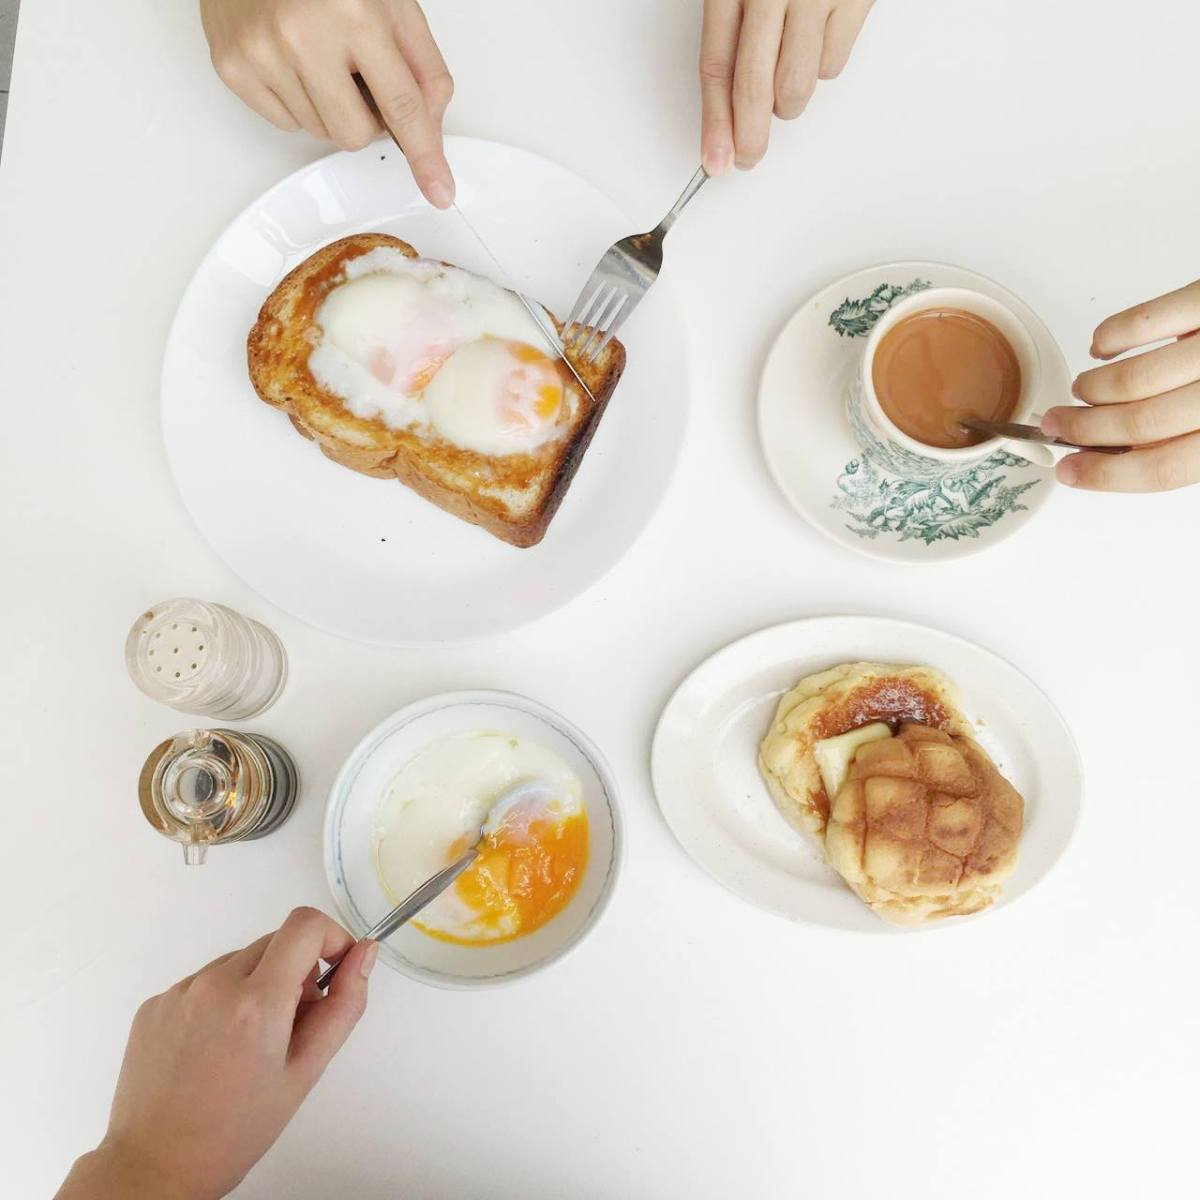 15 Best Breakfast Spots For Morning Person In Penang